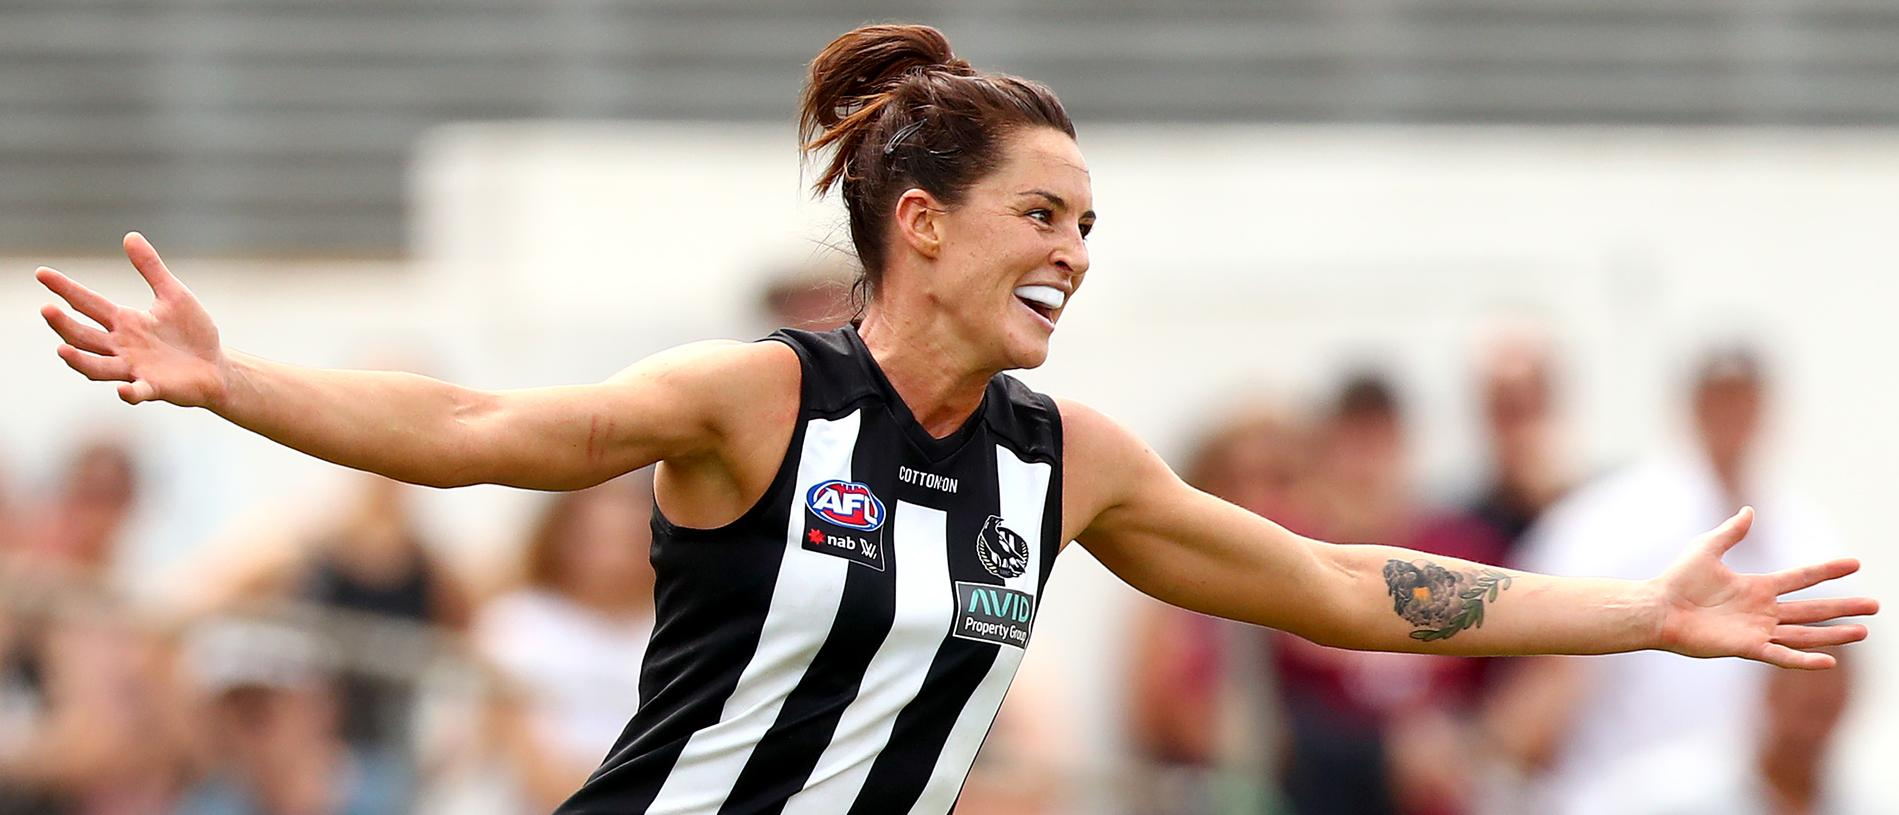 AFLW Rd 1 - Collingwood v West Coast